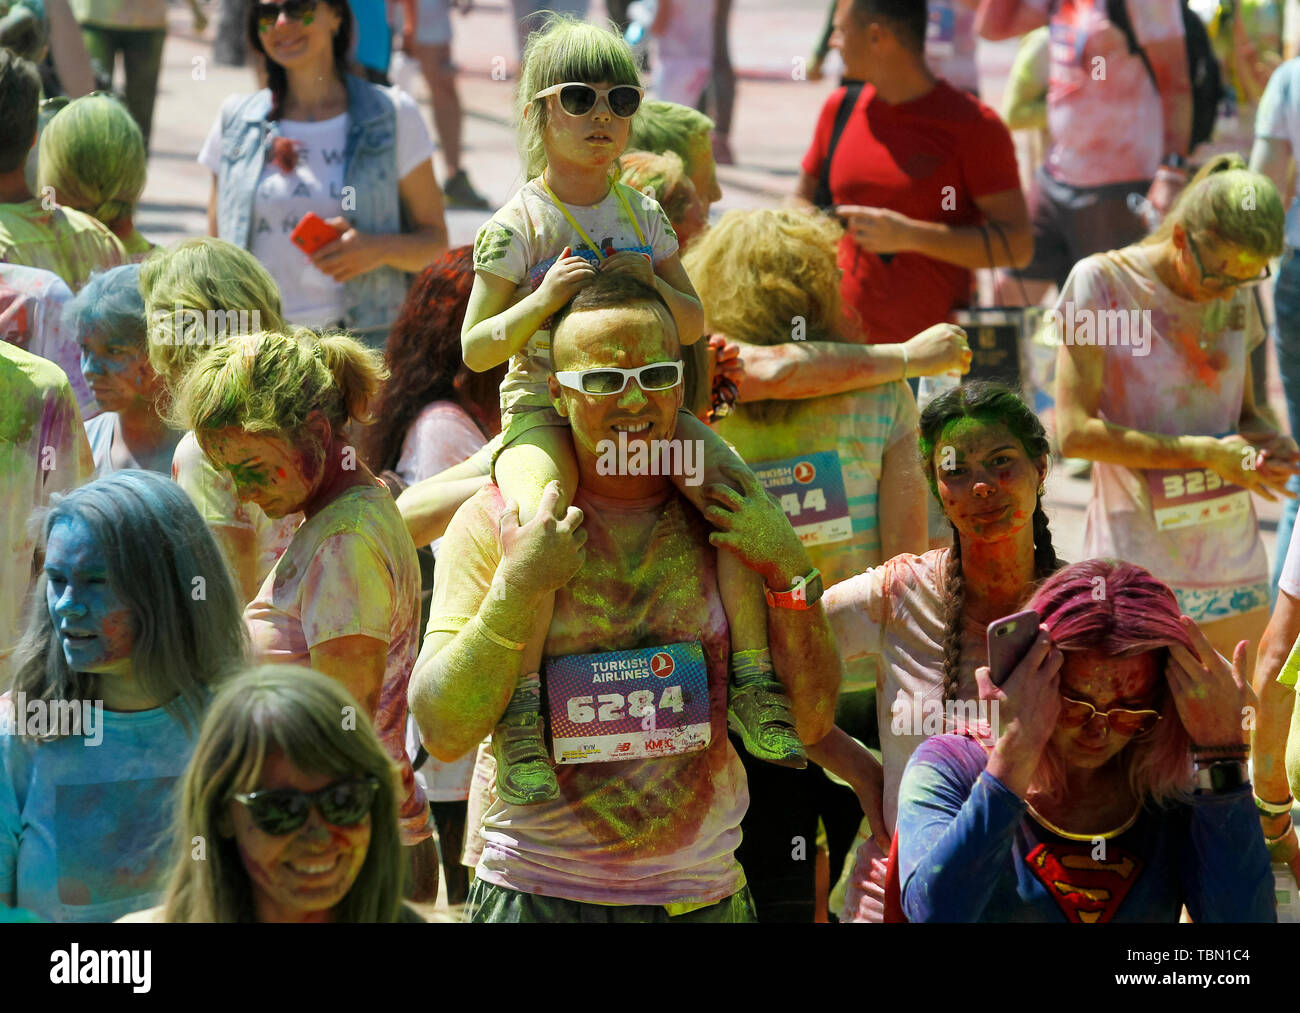 Man and daughter showered with colours during the event. The Color Run, also known as 'the happiest 5,000 meters on the planet', is an event series and paint race, its first event was in the United States in January 2012 since then the run has spread across the globe leaving a trail of color and happy runners across different continents and countries. The untimed event has no winners or prizes, but runners are showered with colored powder, made of food-grade corn starch, at stations along the run. In Ukrainian capital the first time Kyiv Color Run started in 2014. - Stock Image